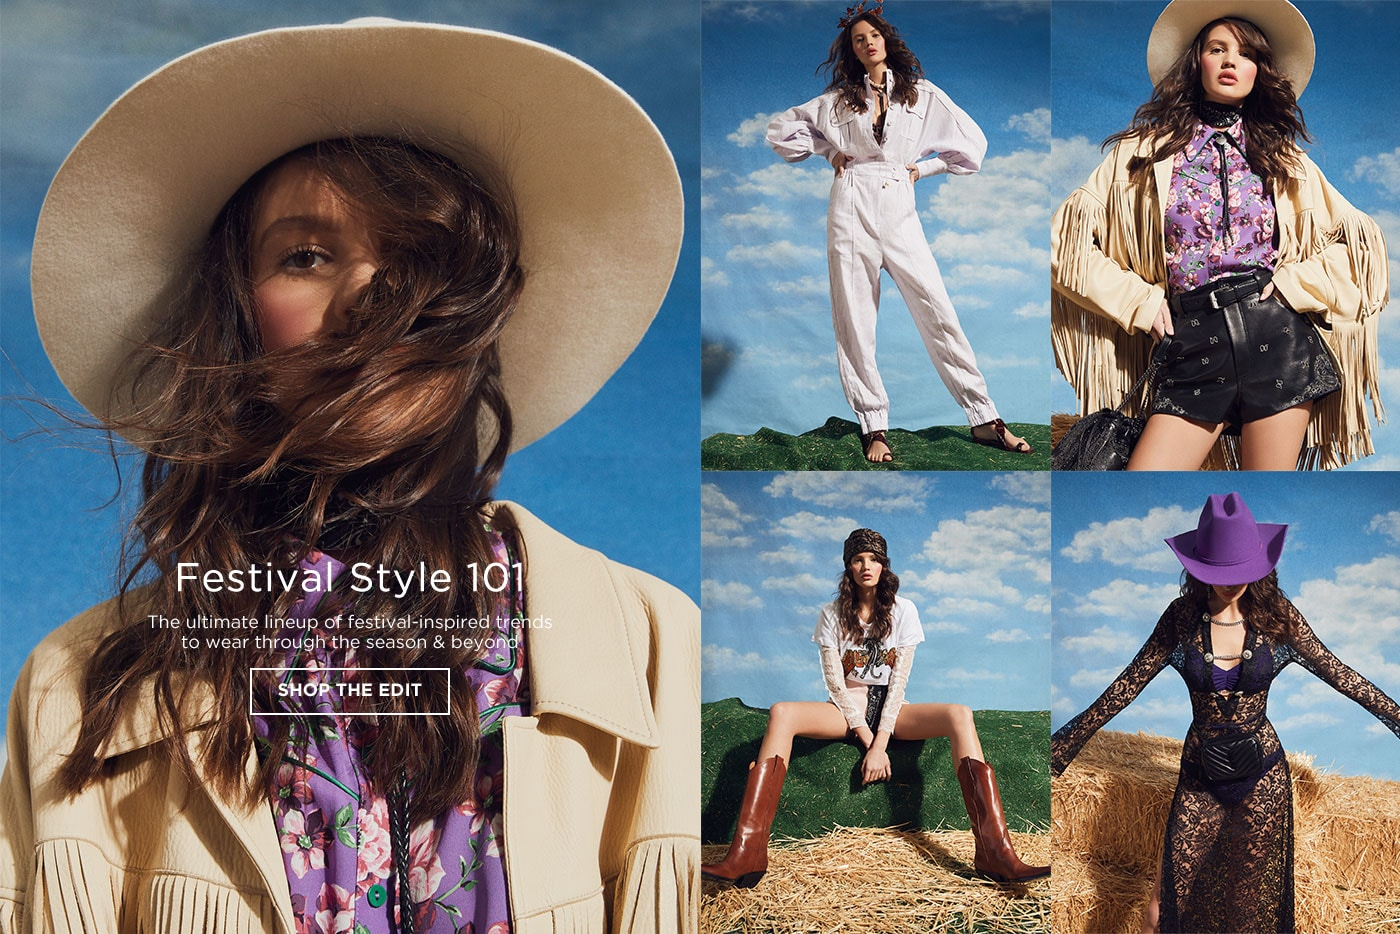 Festival Style 101 03/18/19 2